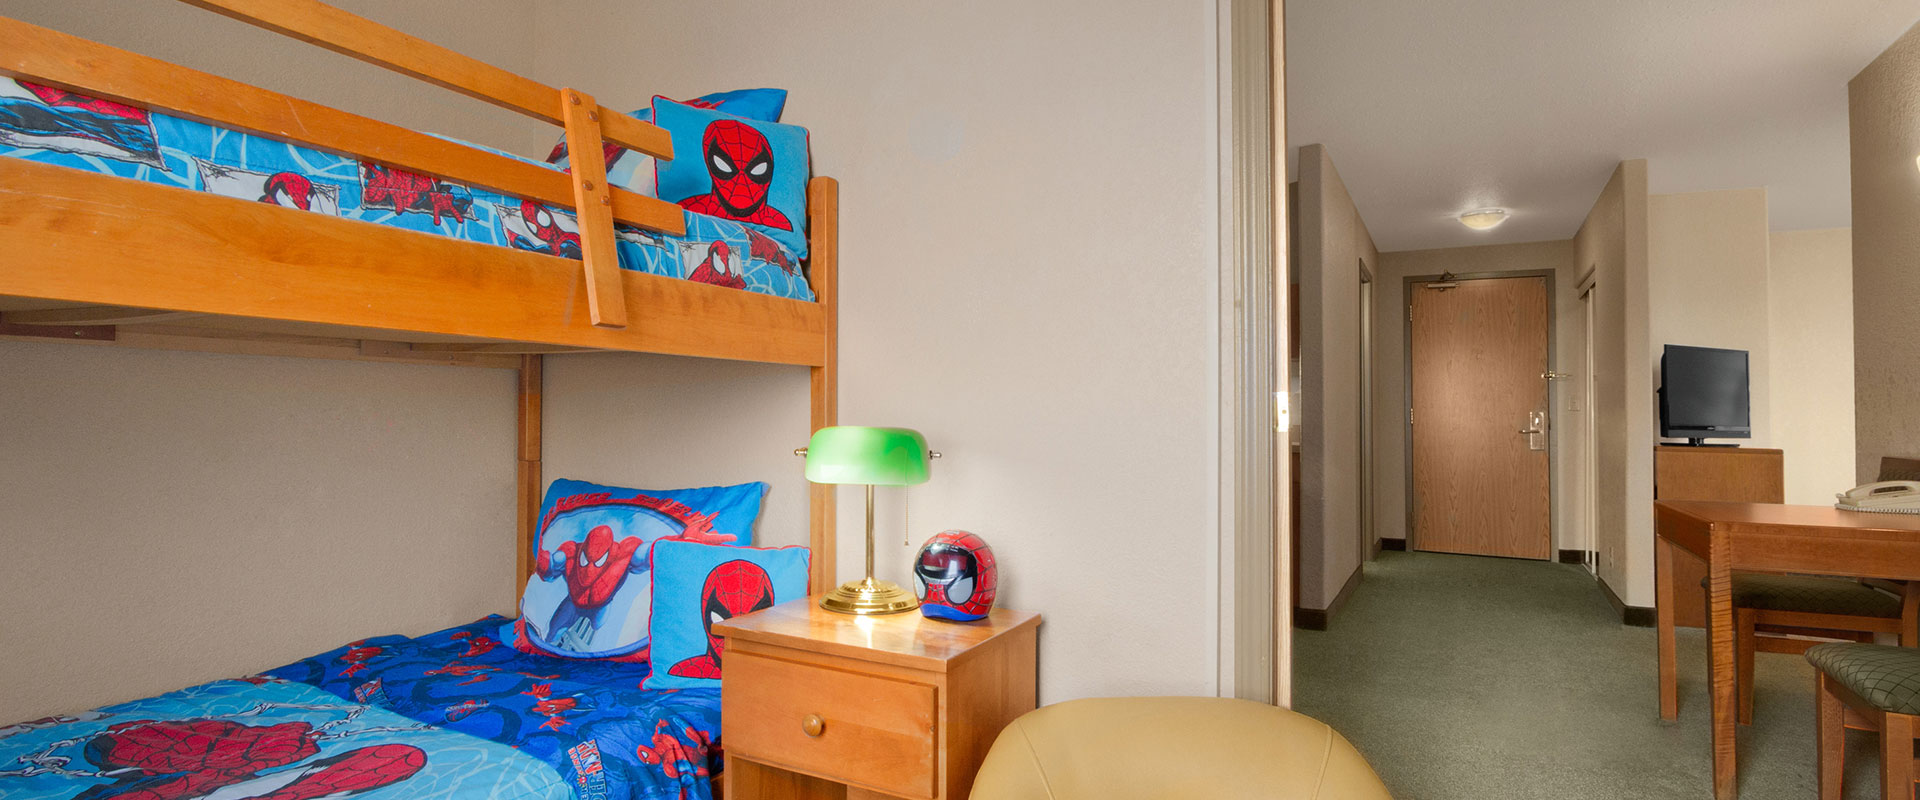 Large sized view of a kid friendly suite featuring bunk beds with Spiderman bed linen and pillows at Days Inn Red Deer, Alberta.